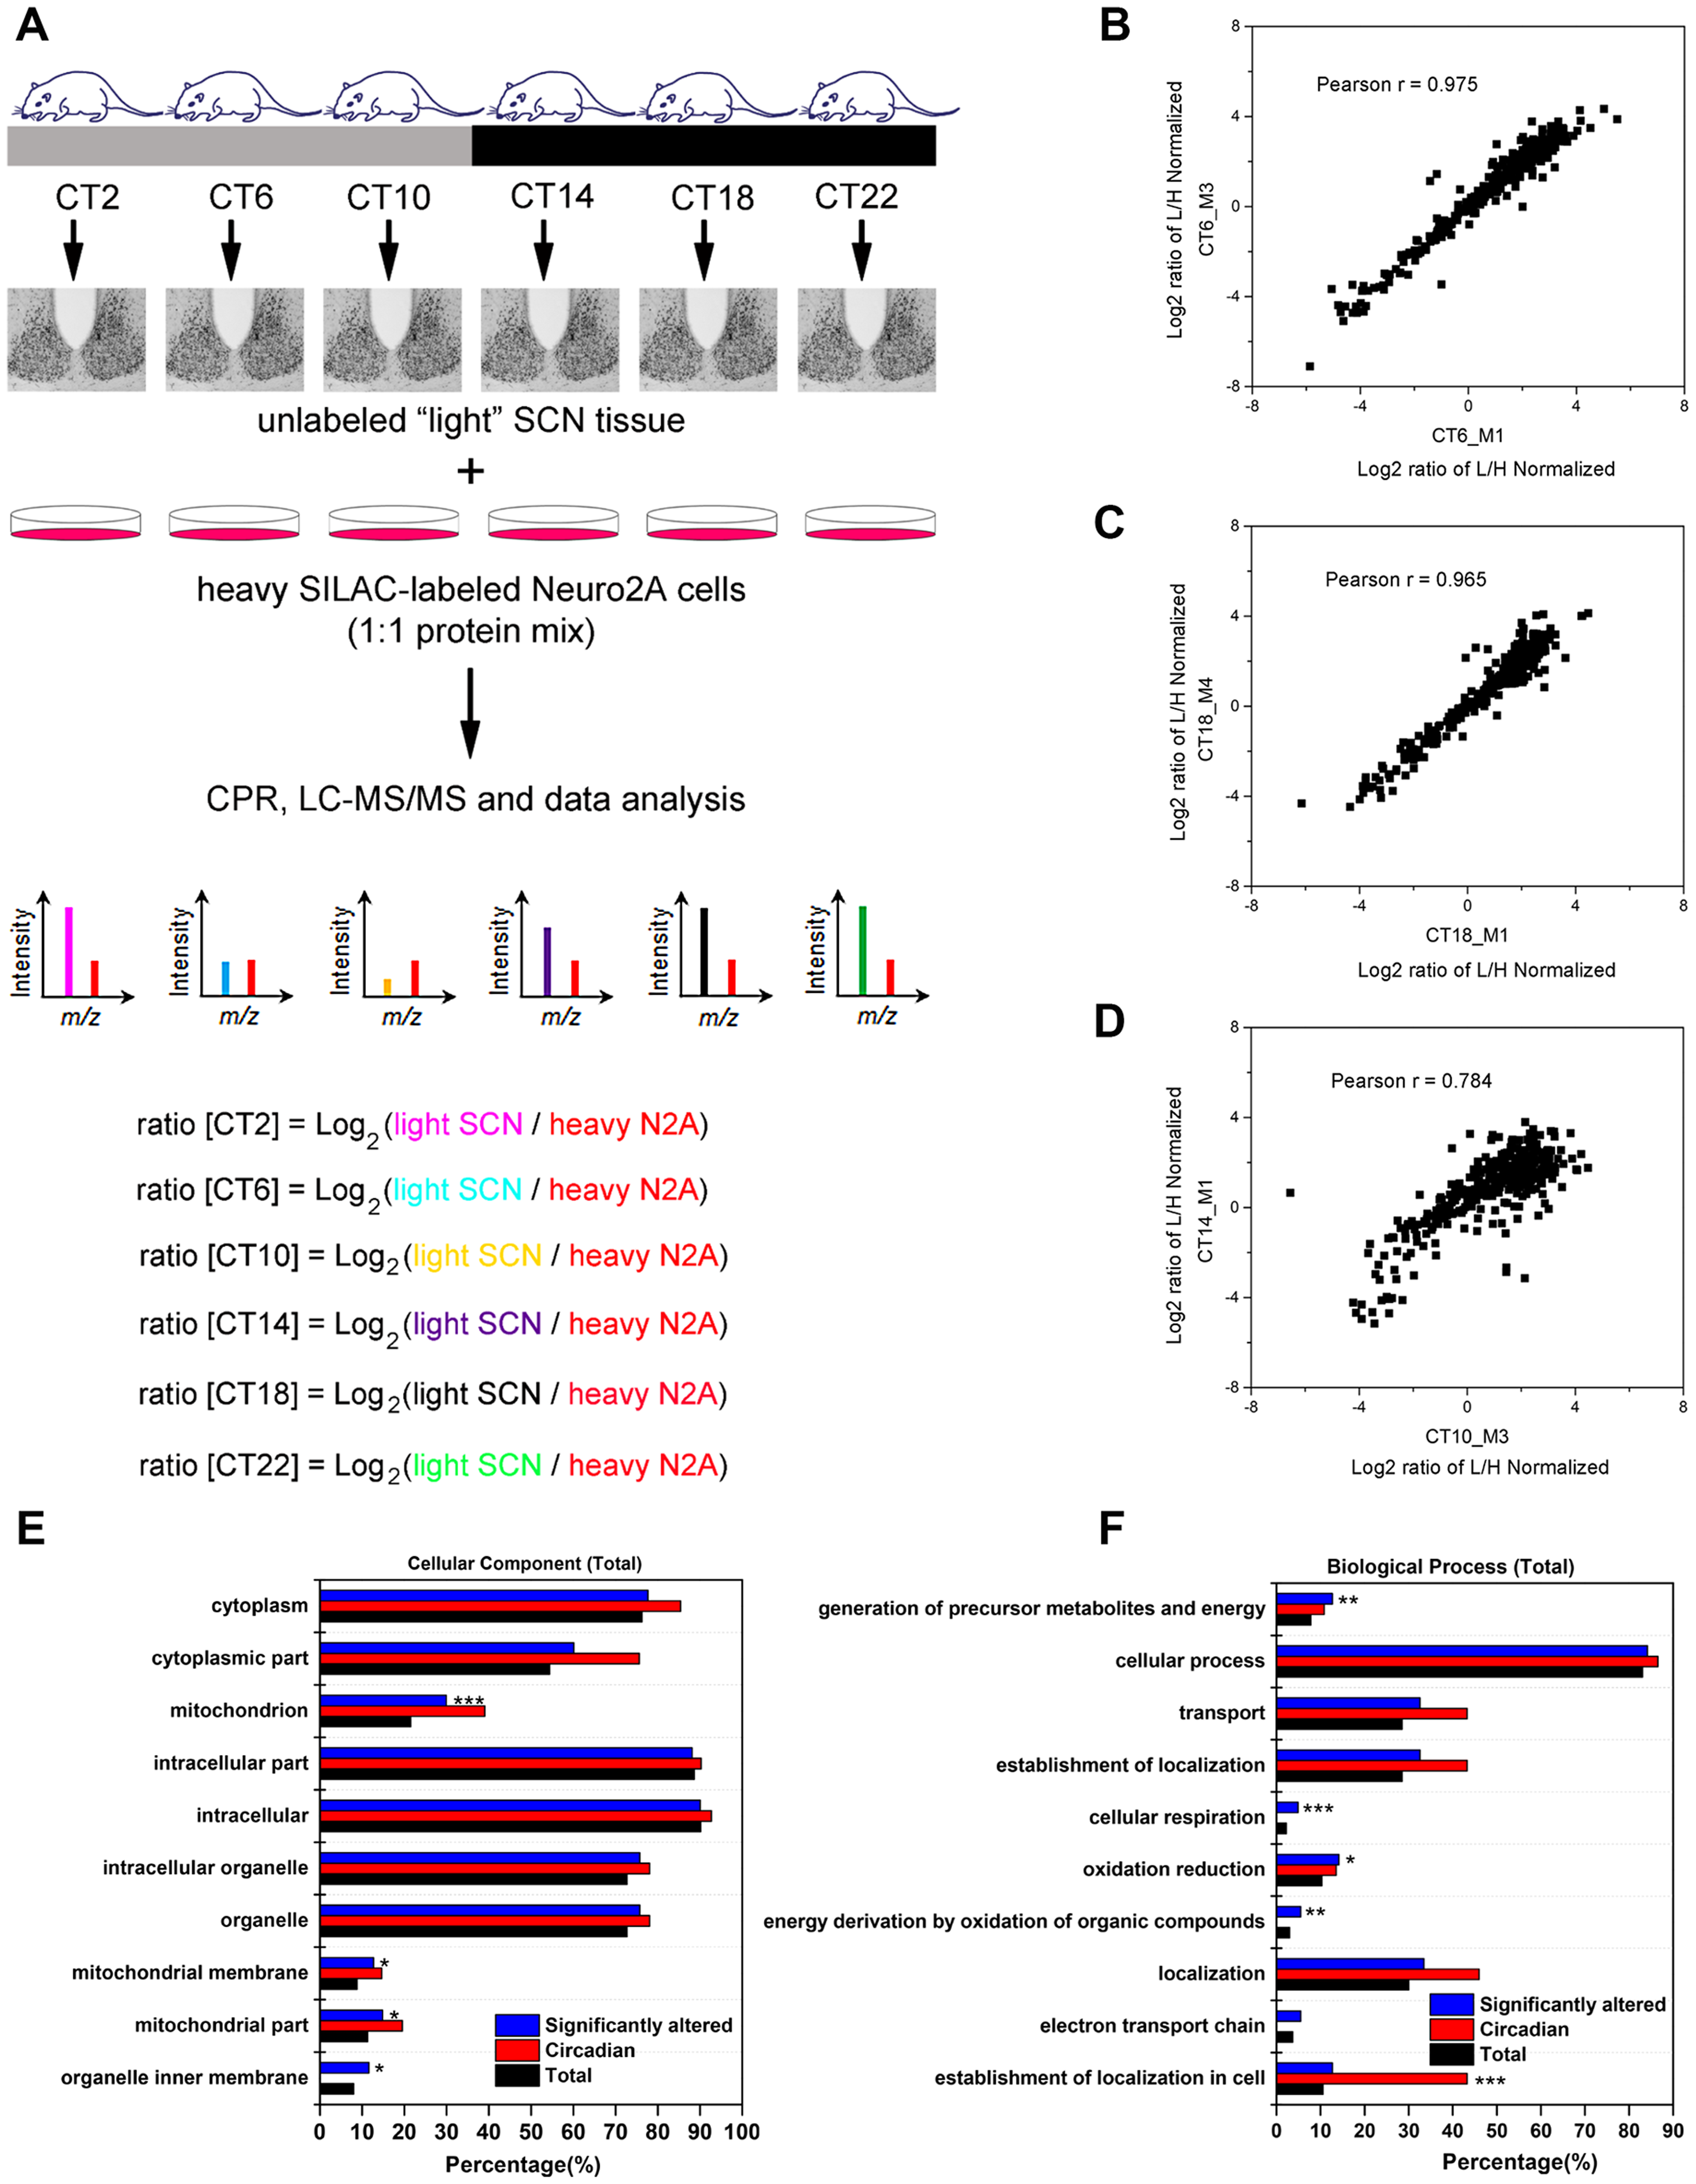 Global proteomic analysis of the murine SCN.